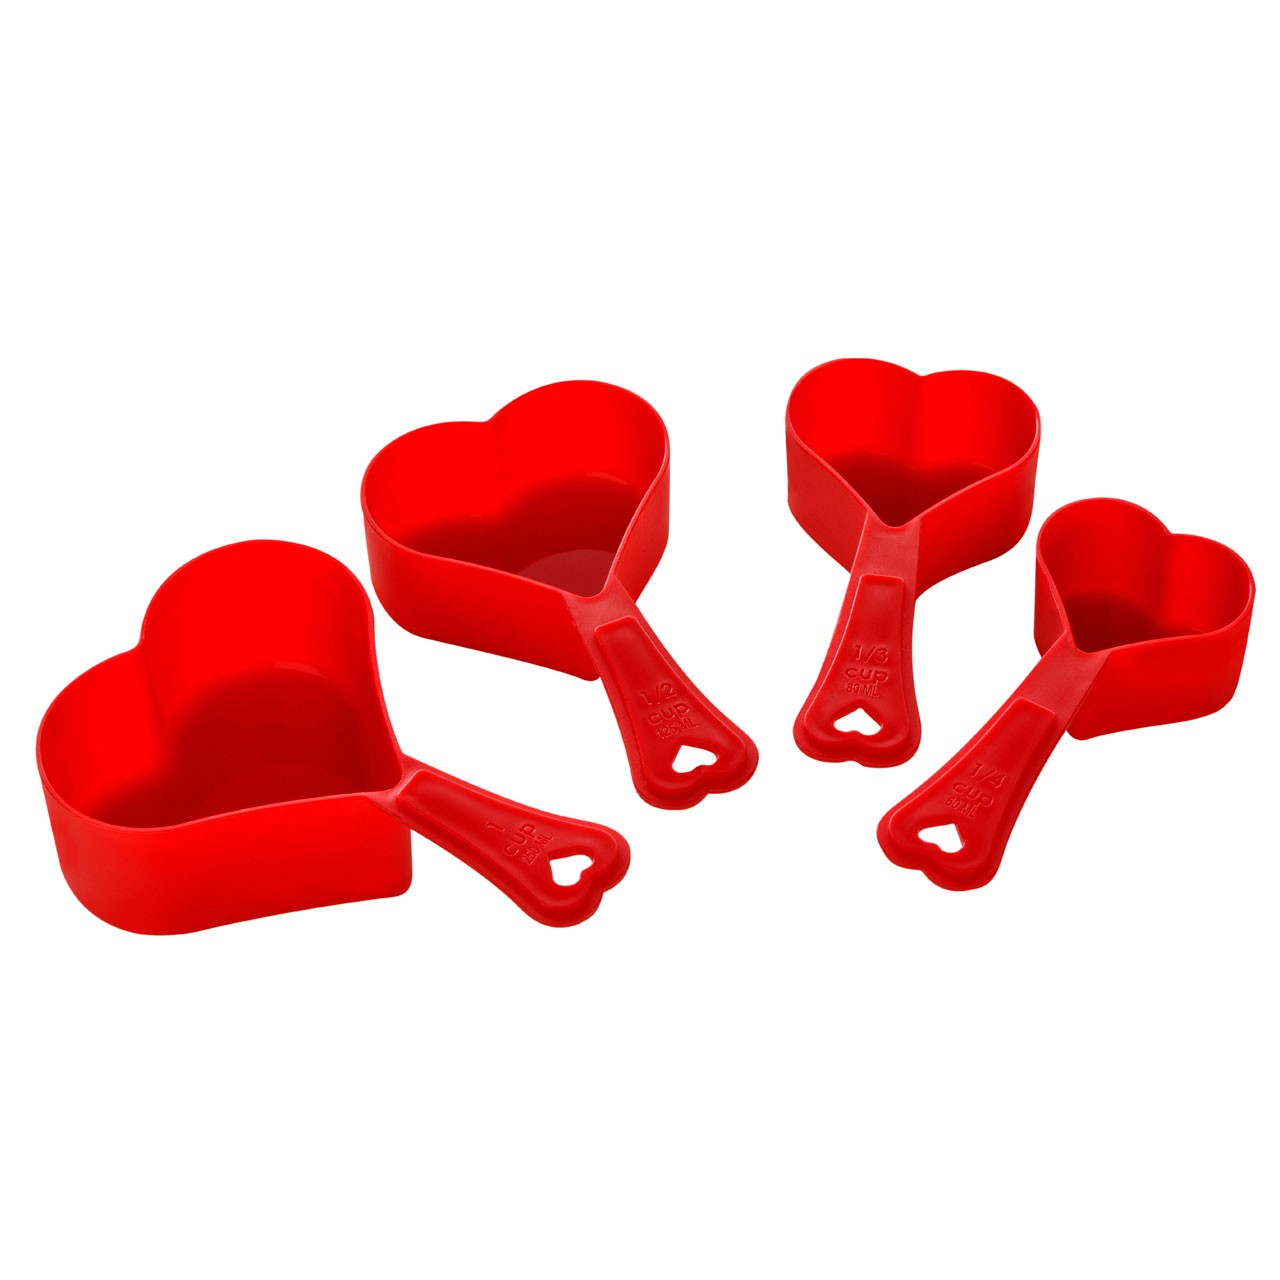 4 Piece Red Love Heart Shaped Measuring Spoon Set Cups